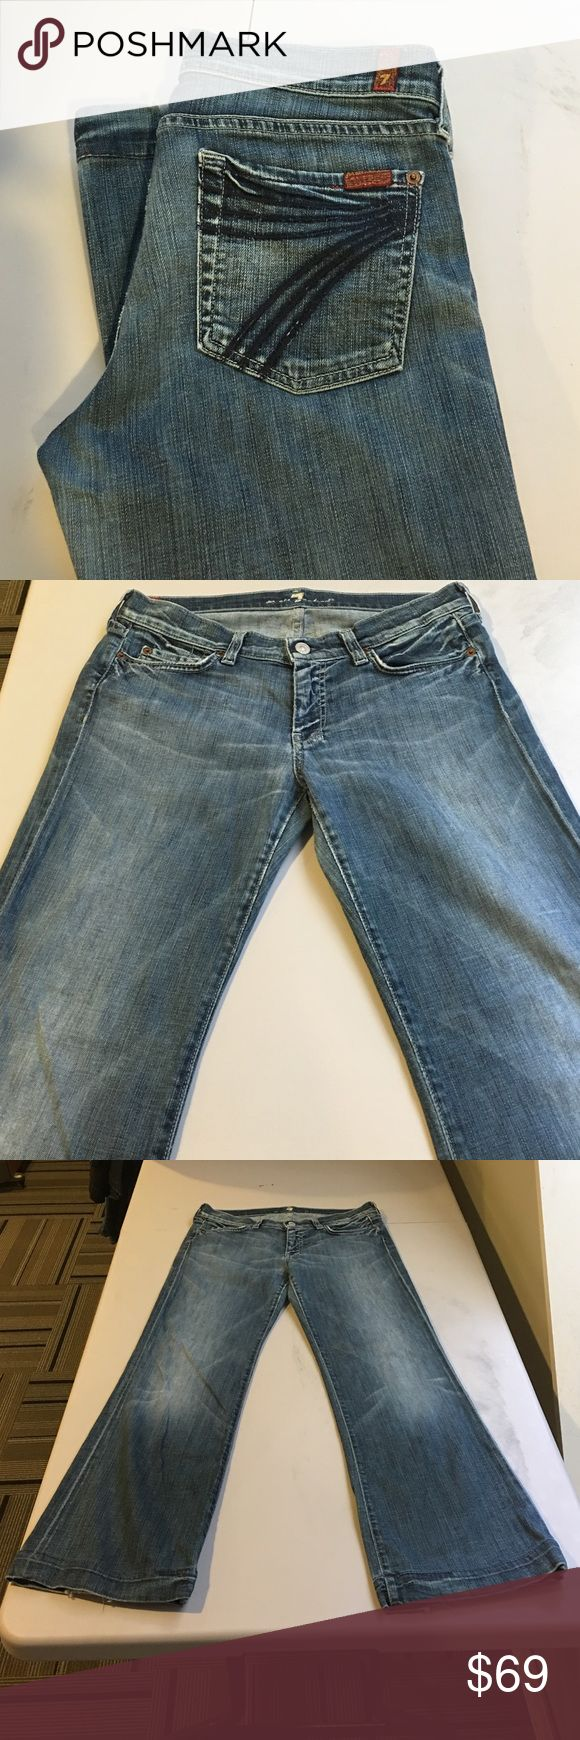 "SEVEN FOR ALL MANKIND DOJO JEANS!! Ok, these definitely have been worn, but they're still in good condition! Bit of wear on the BACKS of the BOTTOMS and some distressed spots. Price reflects this. Dark ""7's"" on back pockets. Size 29. Inseam 29. PRICE FIRM PLEASE 7 for all Mankind Jeans Flare & Wide Leg"